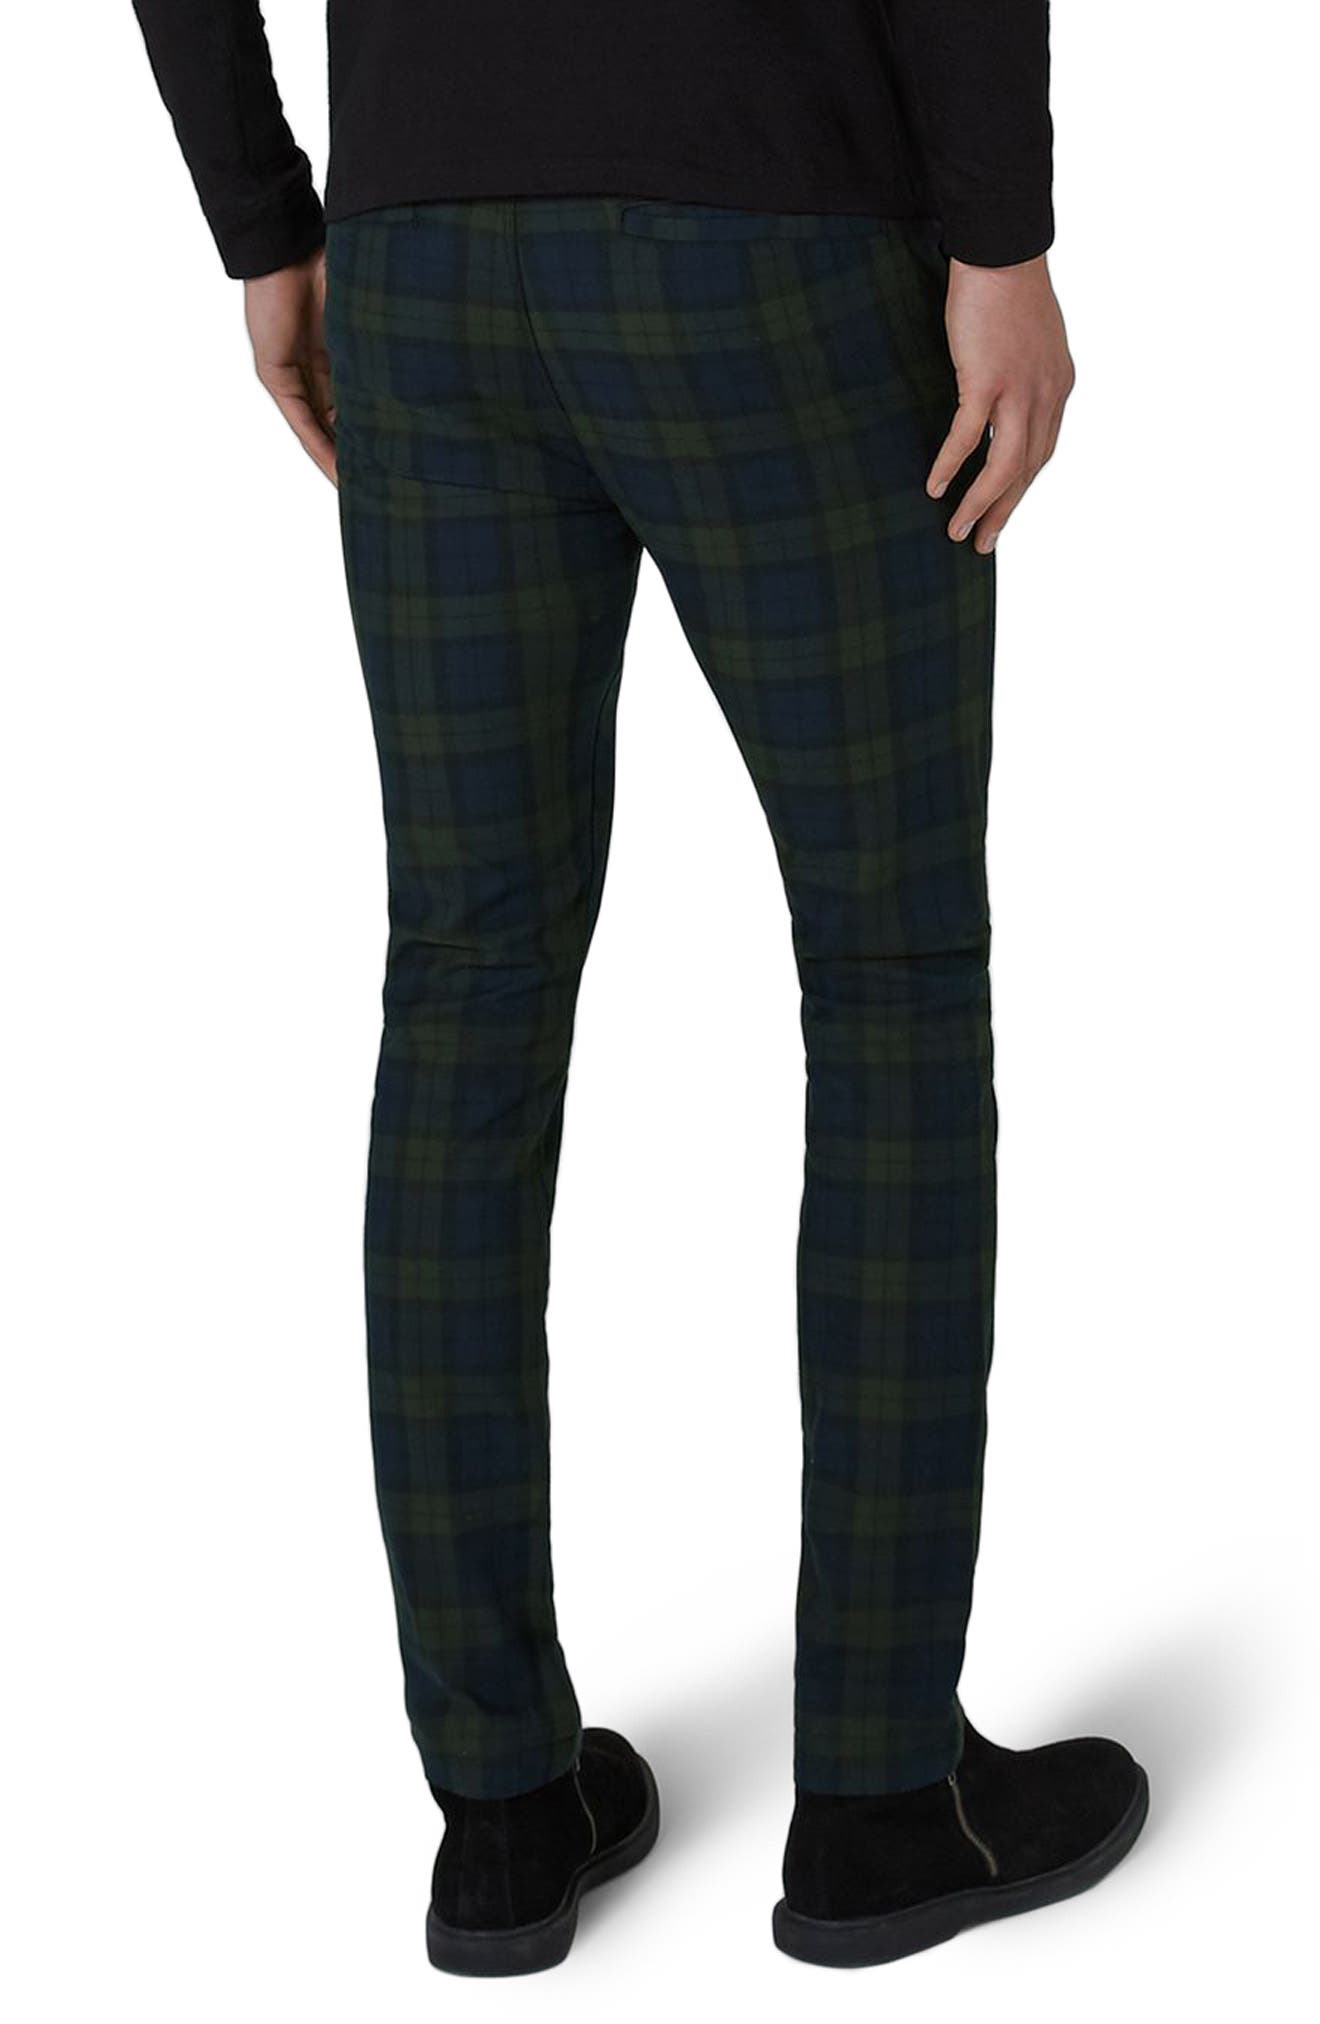 Black Watch Check Stretch Skinny Fit Trousers,                             Alternate thumbnail 2, color,                             340